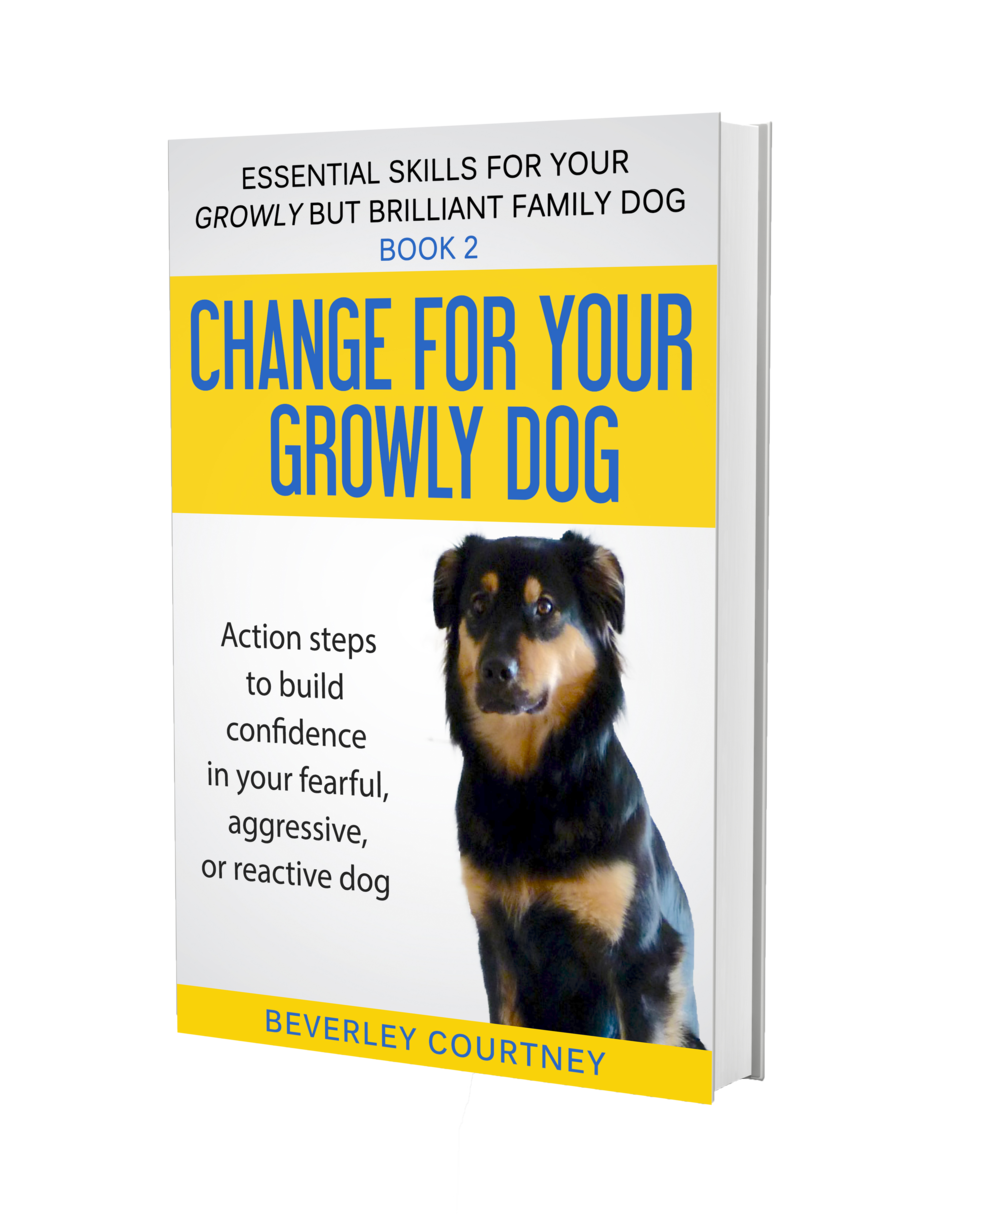 Dog training book aggressive dog, reactive dog | Change for your Growly Dog - Book 2 by Beverley Courtney  | #aggressivedog, #aggressivedog, #dogtraining, #growlydog | www.brilliantfamilydog.com/books|